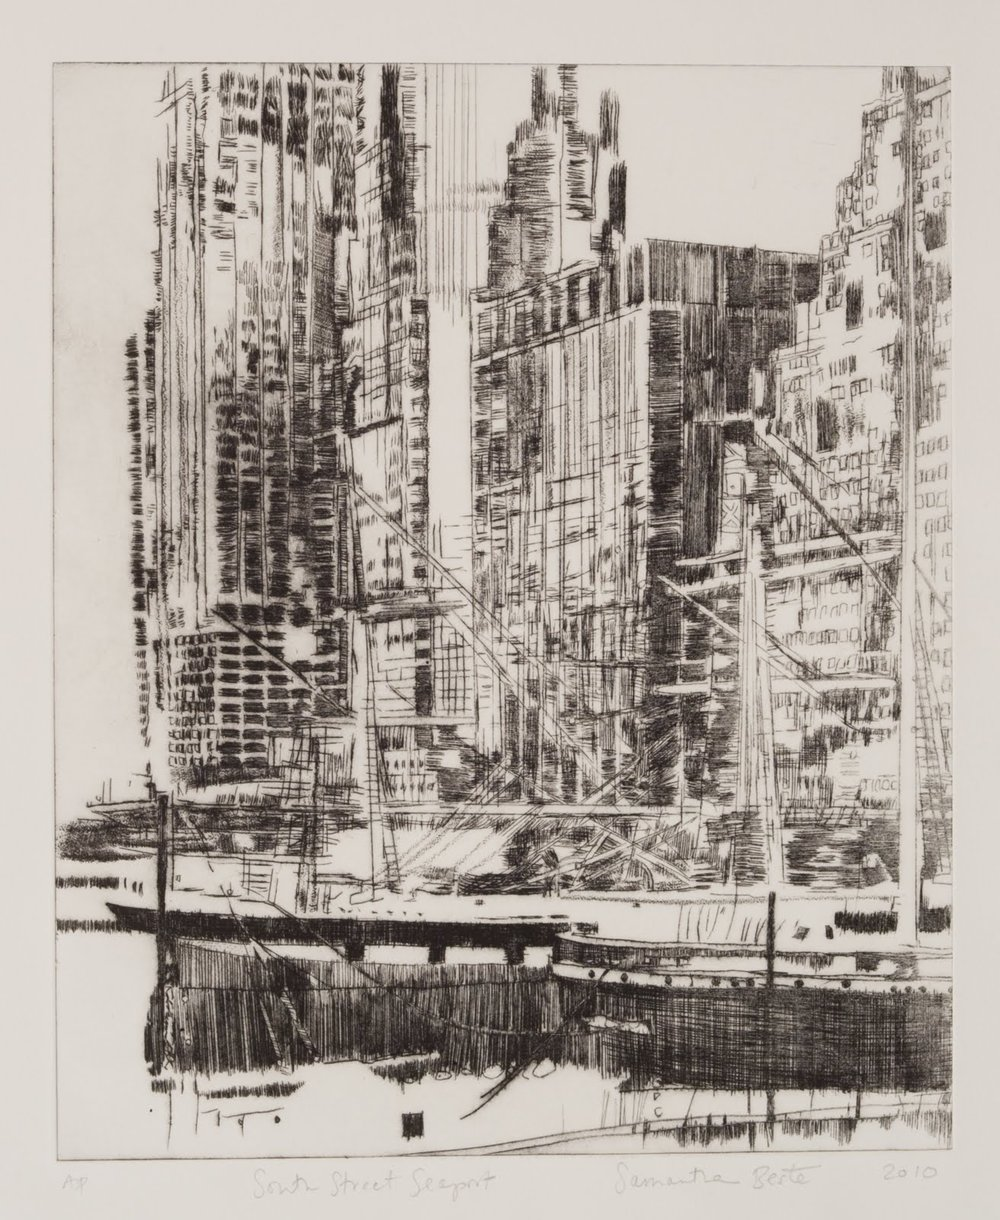 """ South Street Seaport"", drypoint etching, 14 x 12 in."